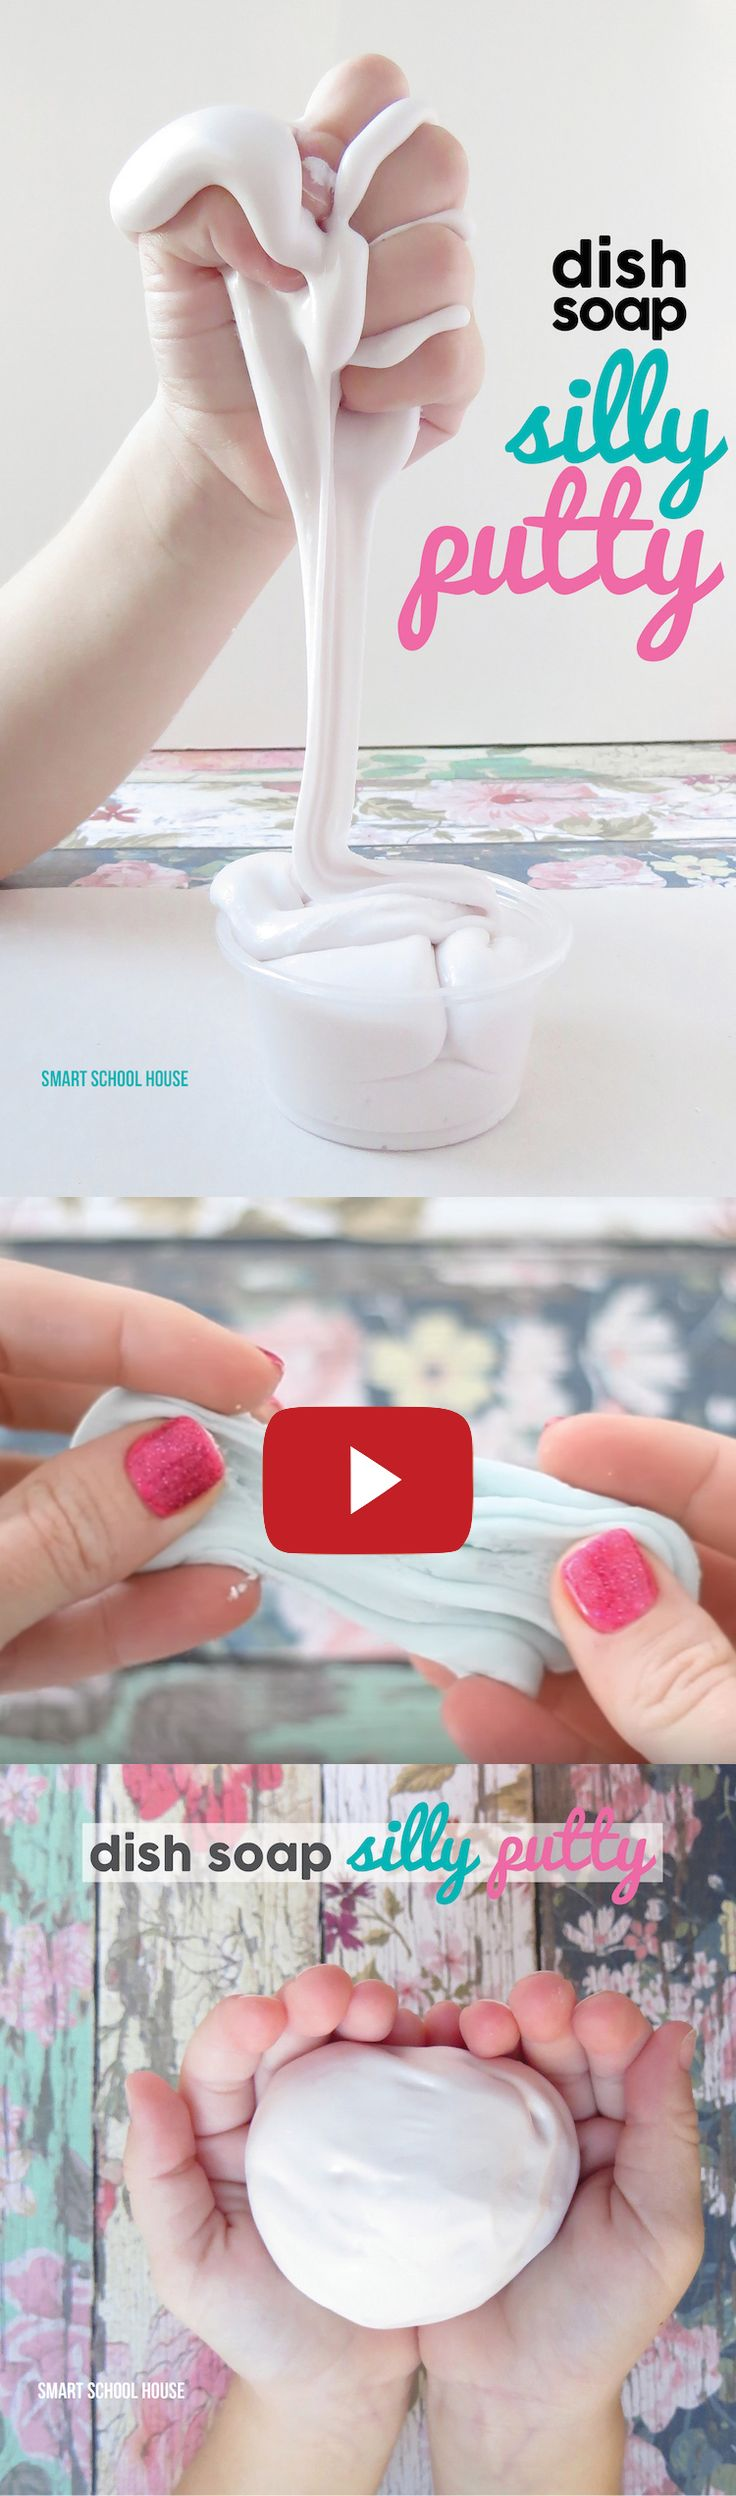 Dish Soap Silly Putty Video - Watch how to make this DIY silly putty using just 2 ingredients. So fun! Must try-